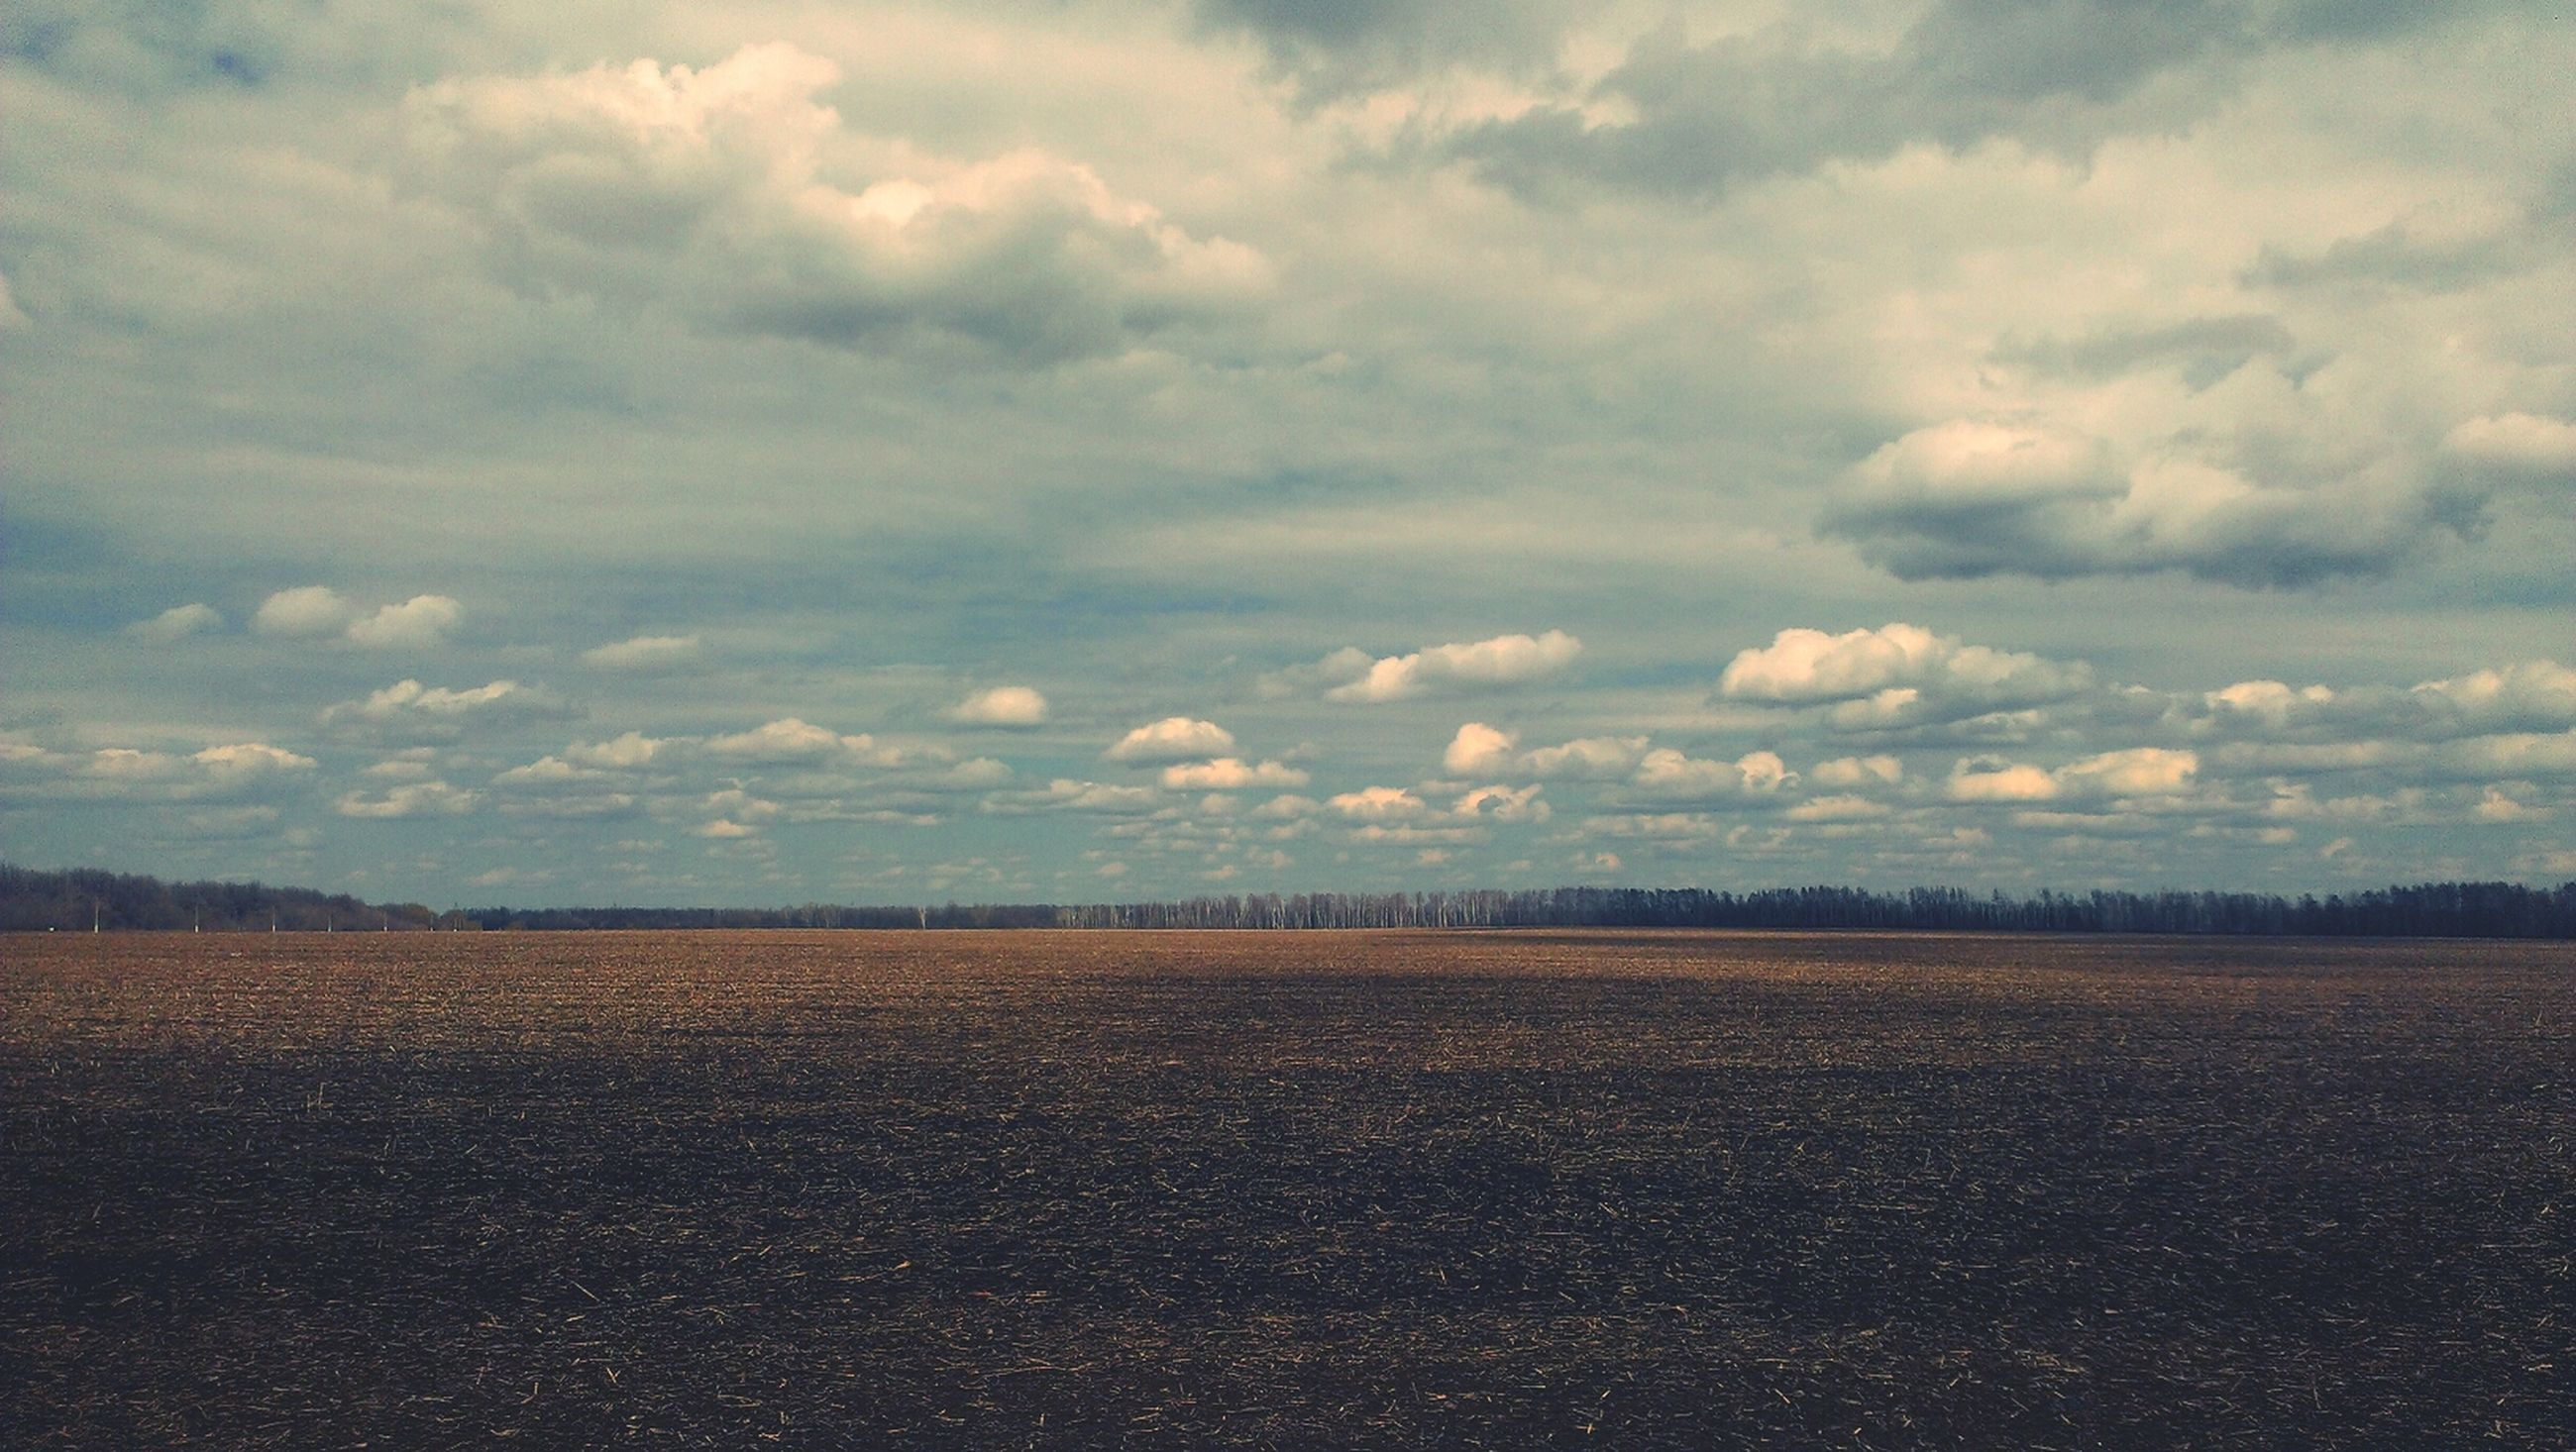 landscape, sky, tranquil scene, tranquility, cloud - sky, scenics, field, beauty in nature, rural scene, cloudy, horizon over land, nature, agriculture, cloud, farm, remote, non-urban scene, idyllic, outdoors, no people